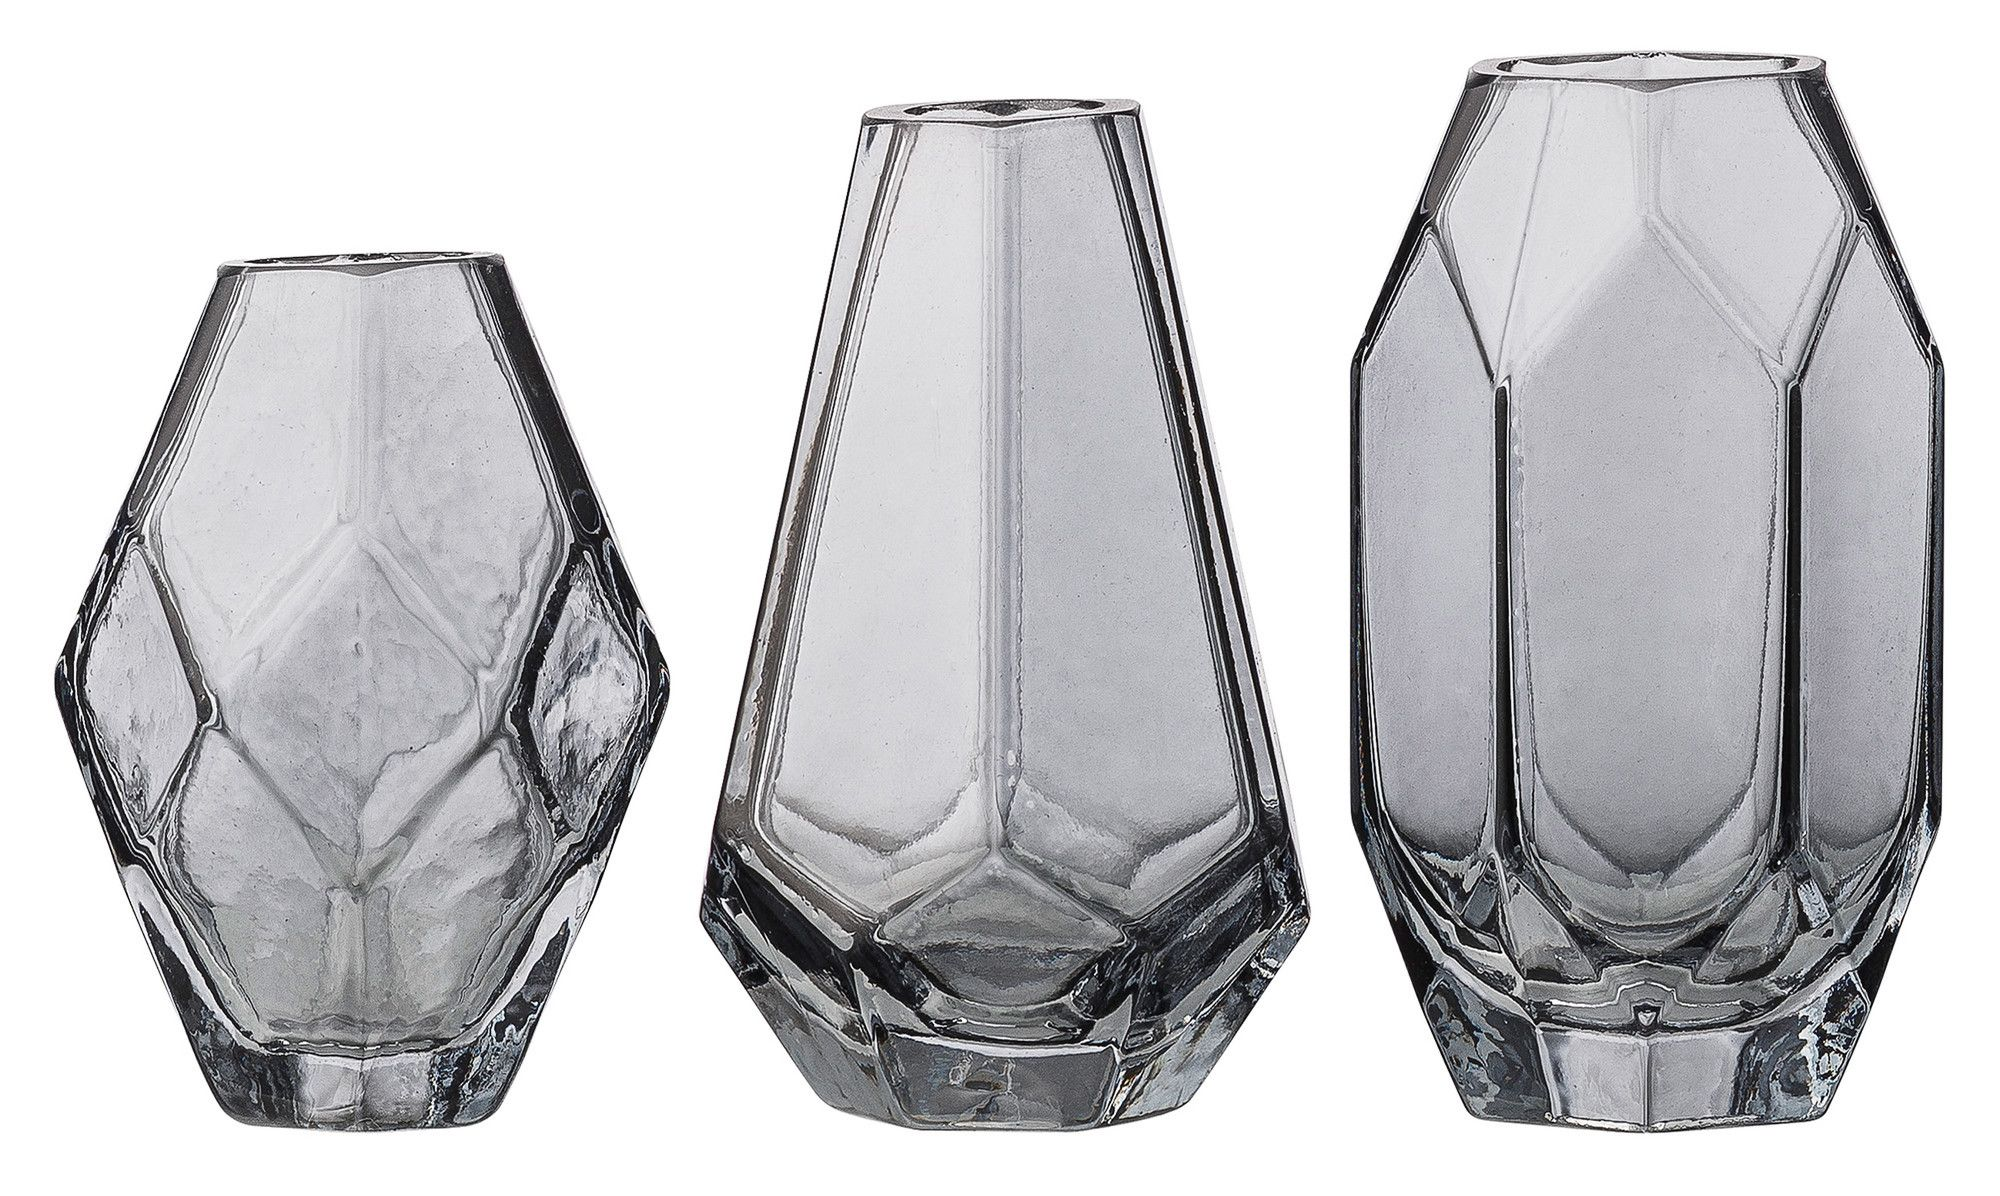 3 Piece Glass Vases Set | Products | Pinterest | Products